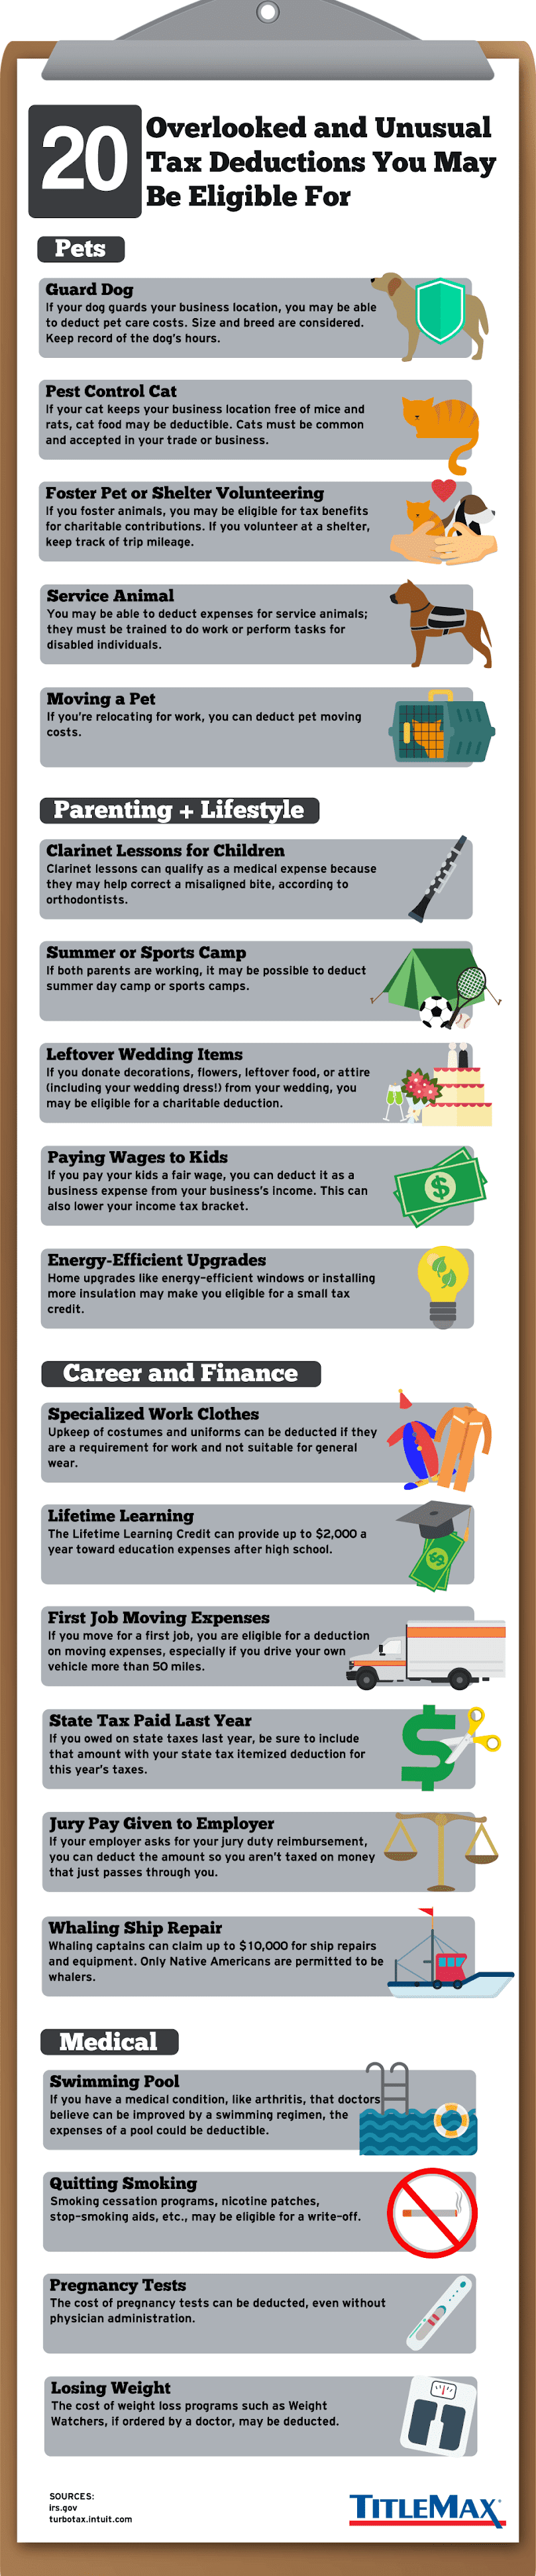 20 Overlooked and Unusual Tax Deductions You May Be Eligible For #infographic